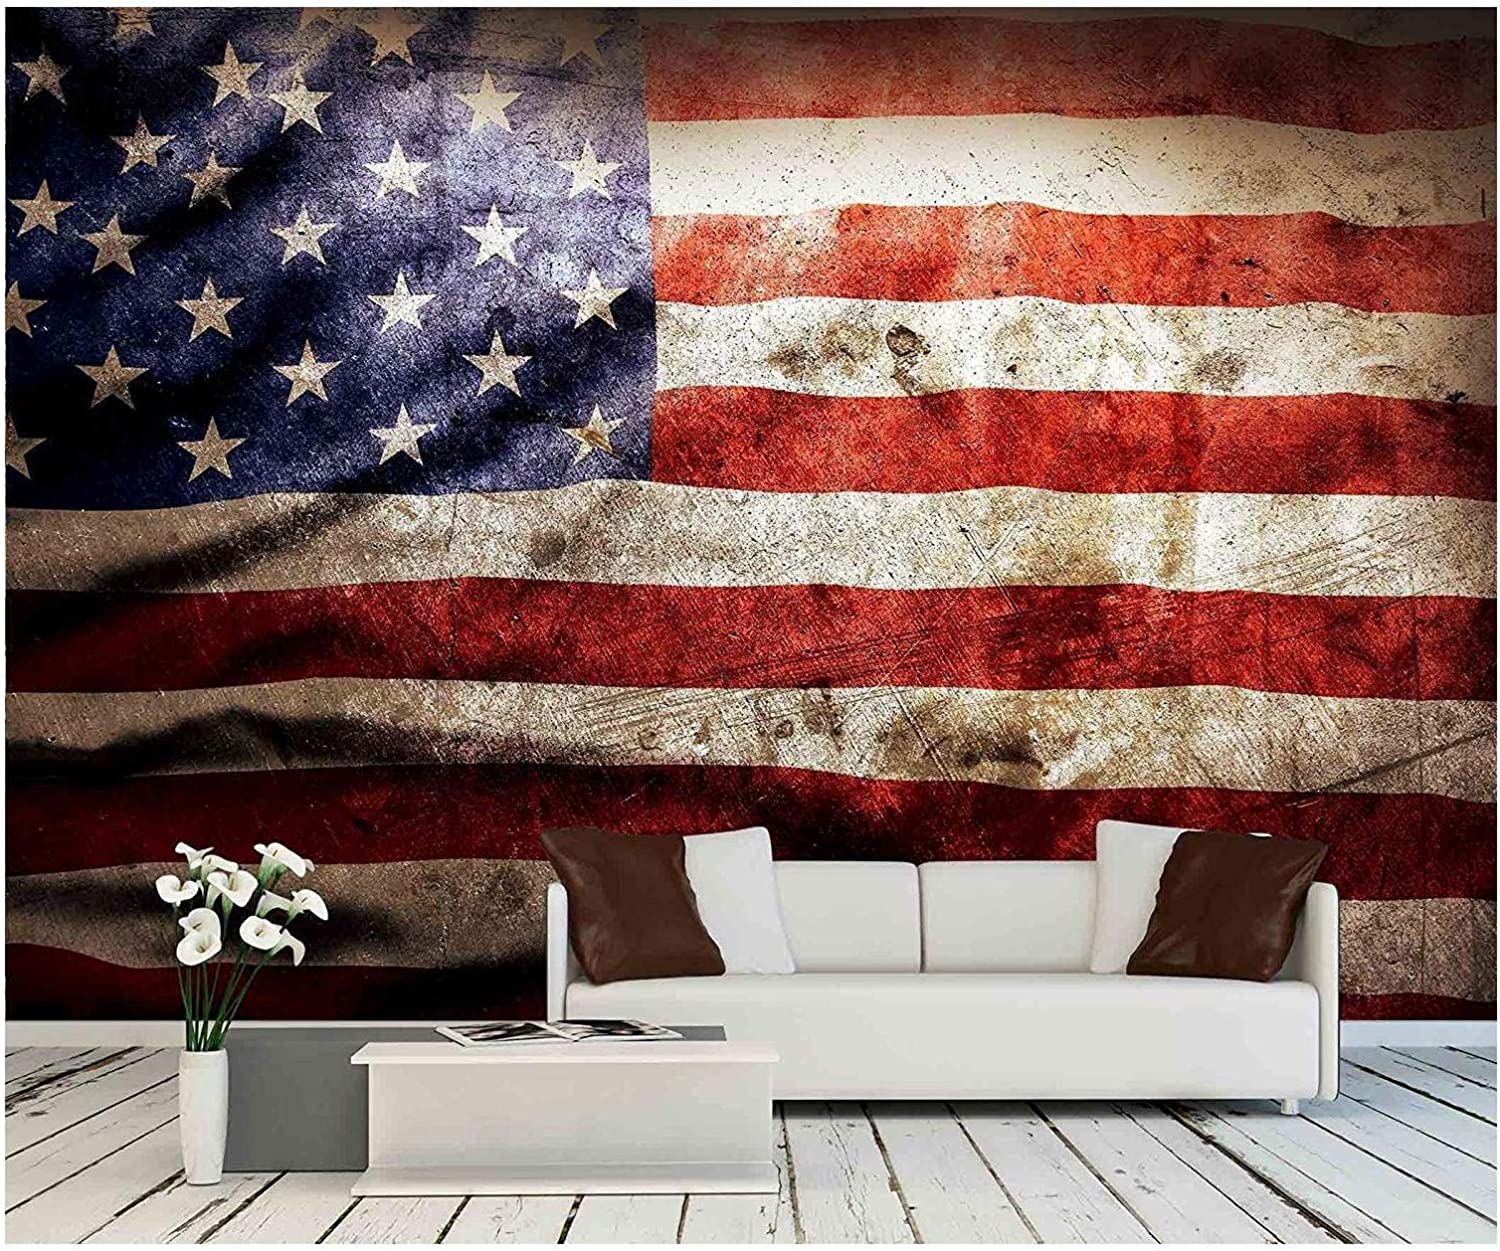 Wall26 Closeup Of Grunge American Flag Removable Wall Mural Self Adhesive Large Wallpaper 100x144 Inches Amazon Com